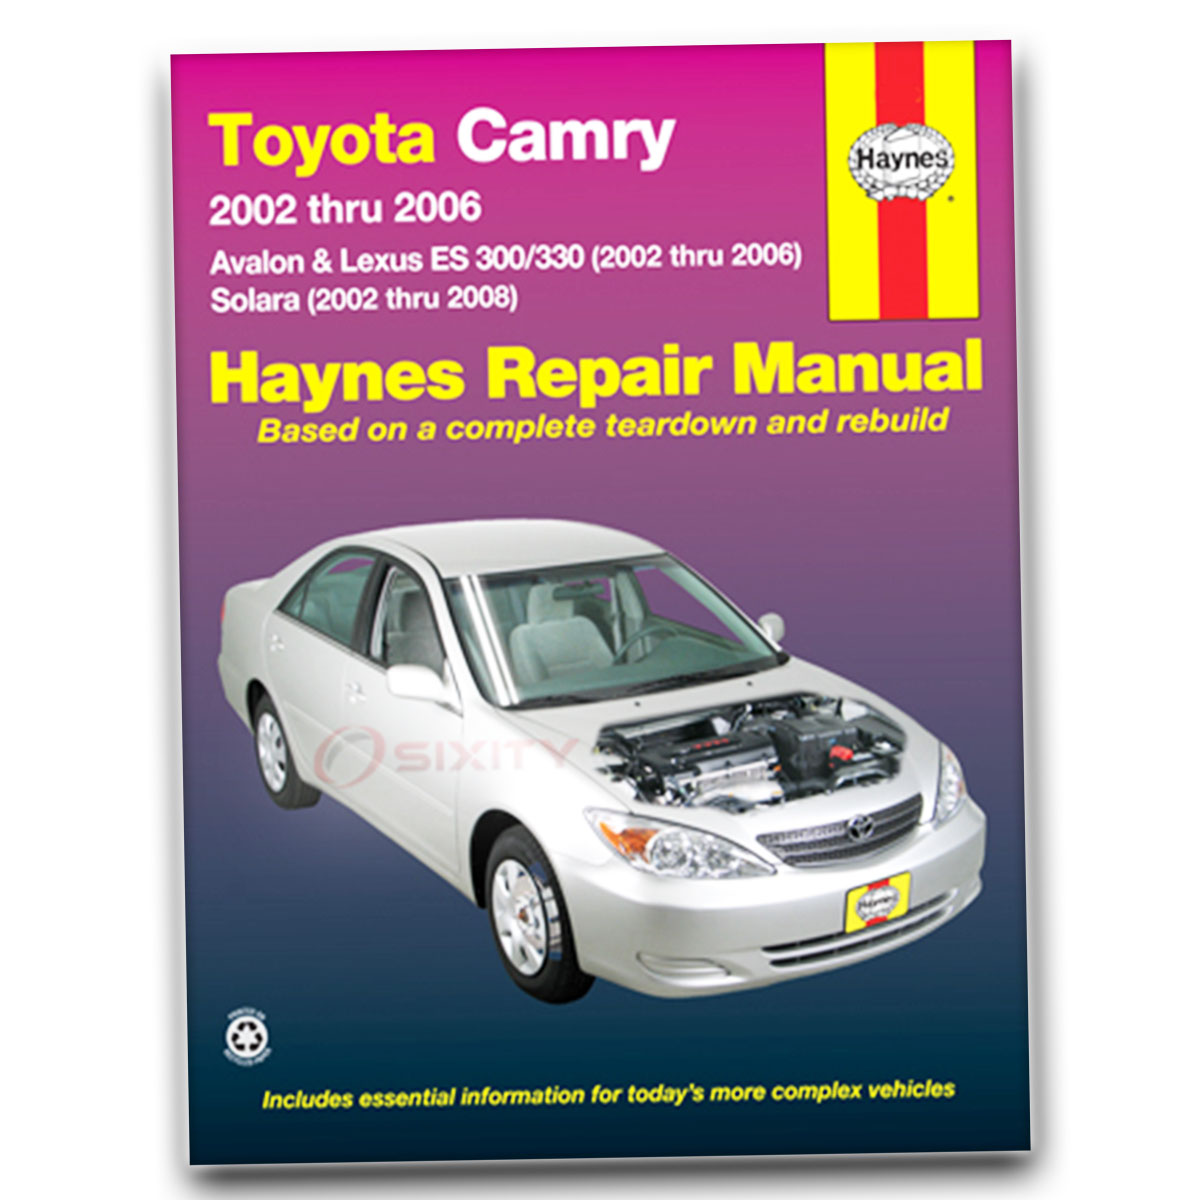 toyota camry haynes repair manual base xle se shop service garage book ec ebay. Black Bedroom Furniture Sets. Home Design Ideas